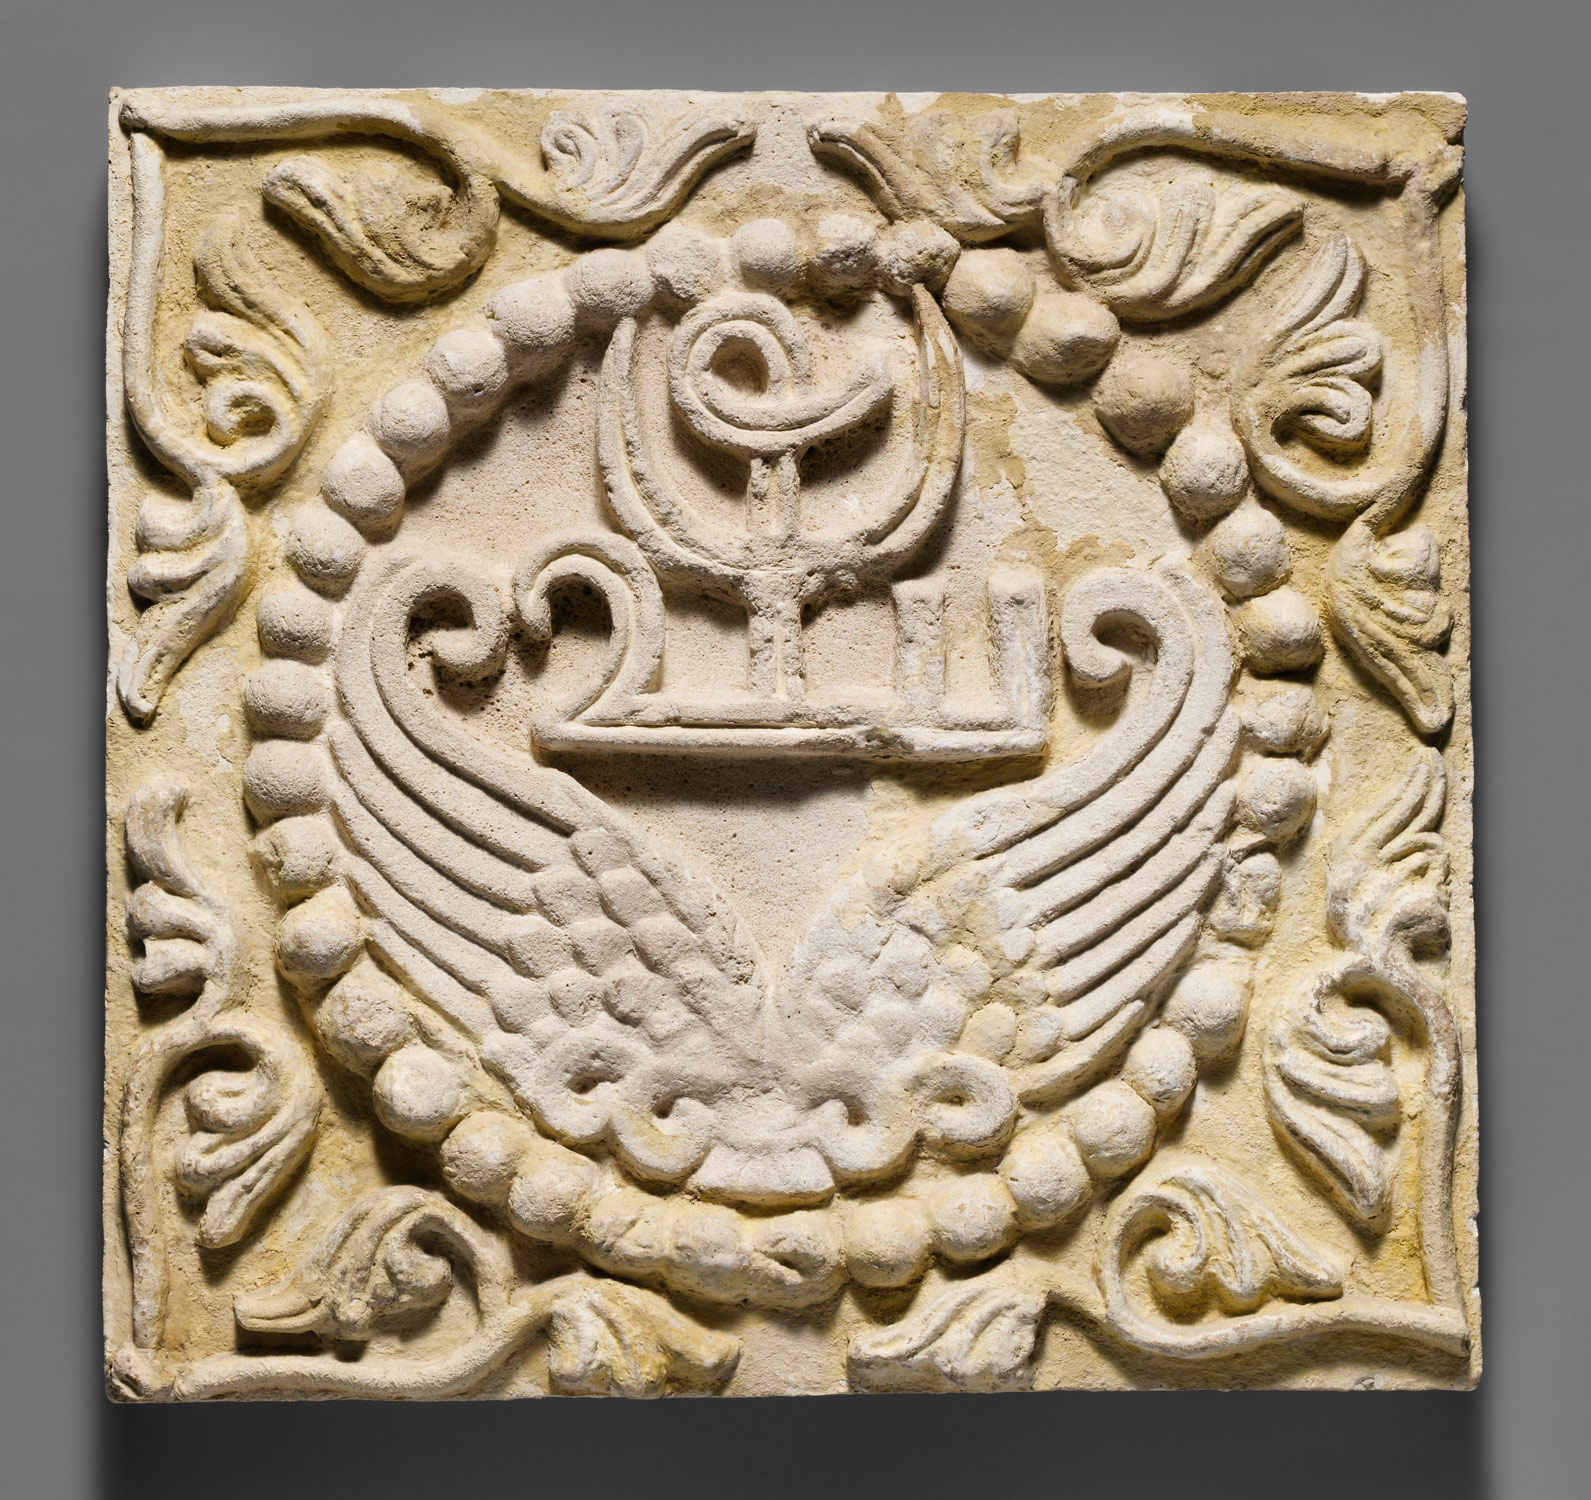 Wall panel with wings and a Pahlavi device encircled by pearls